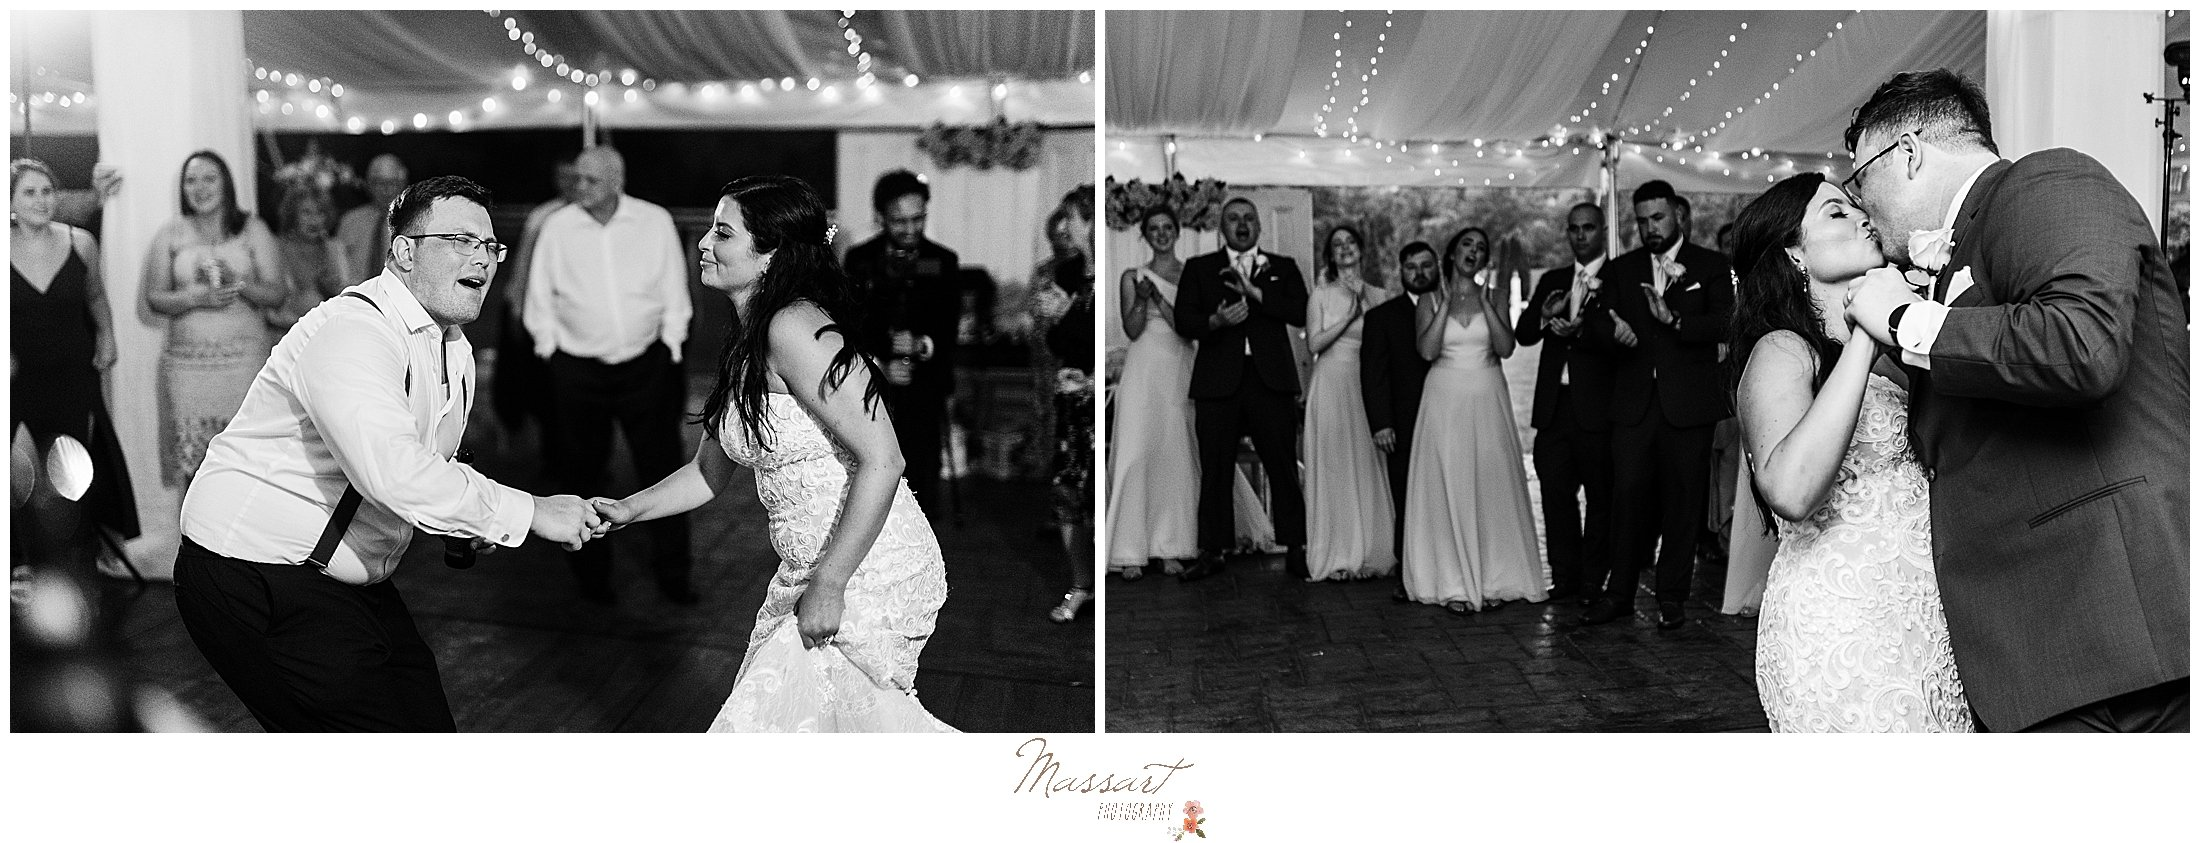 Couple shares a first dance at their MA wedding